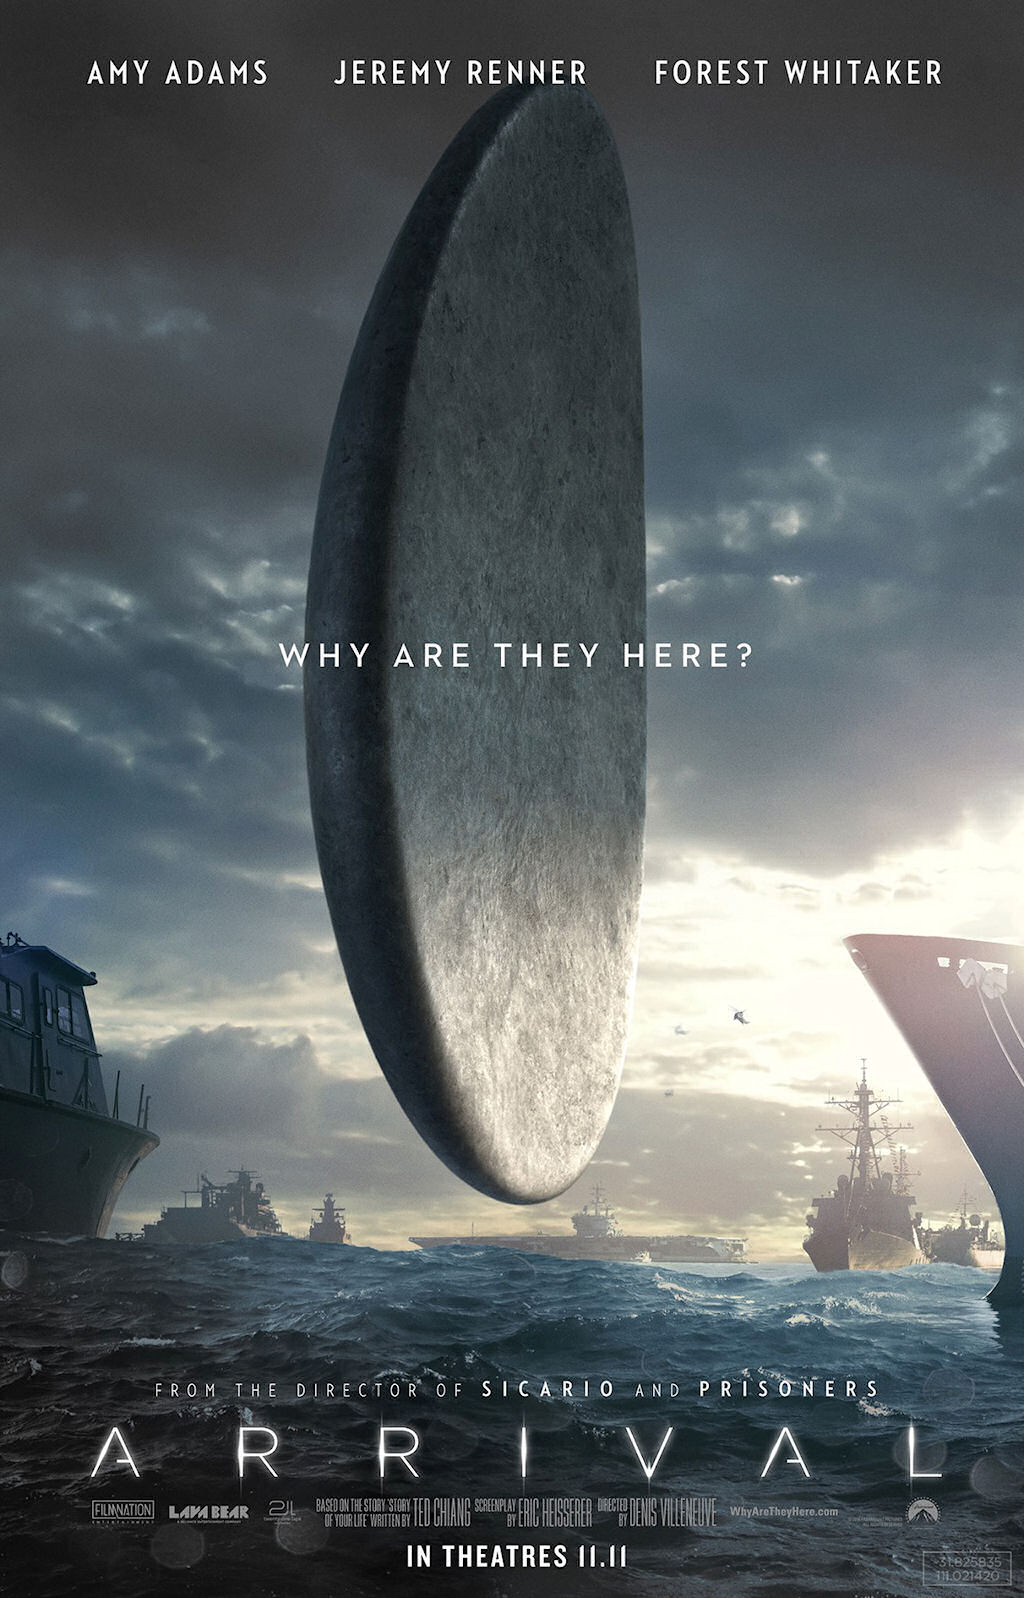 arrival-movie-poster-5